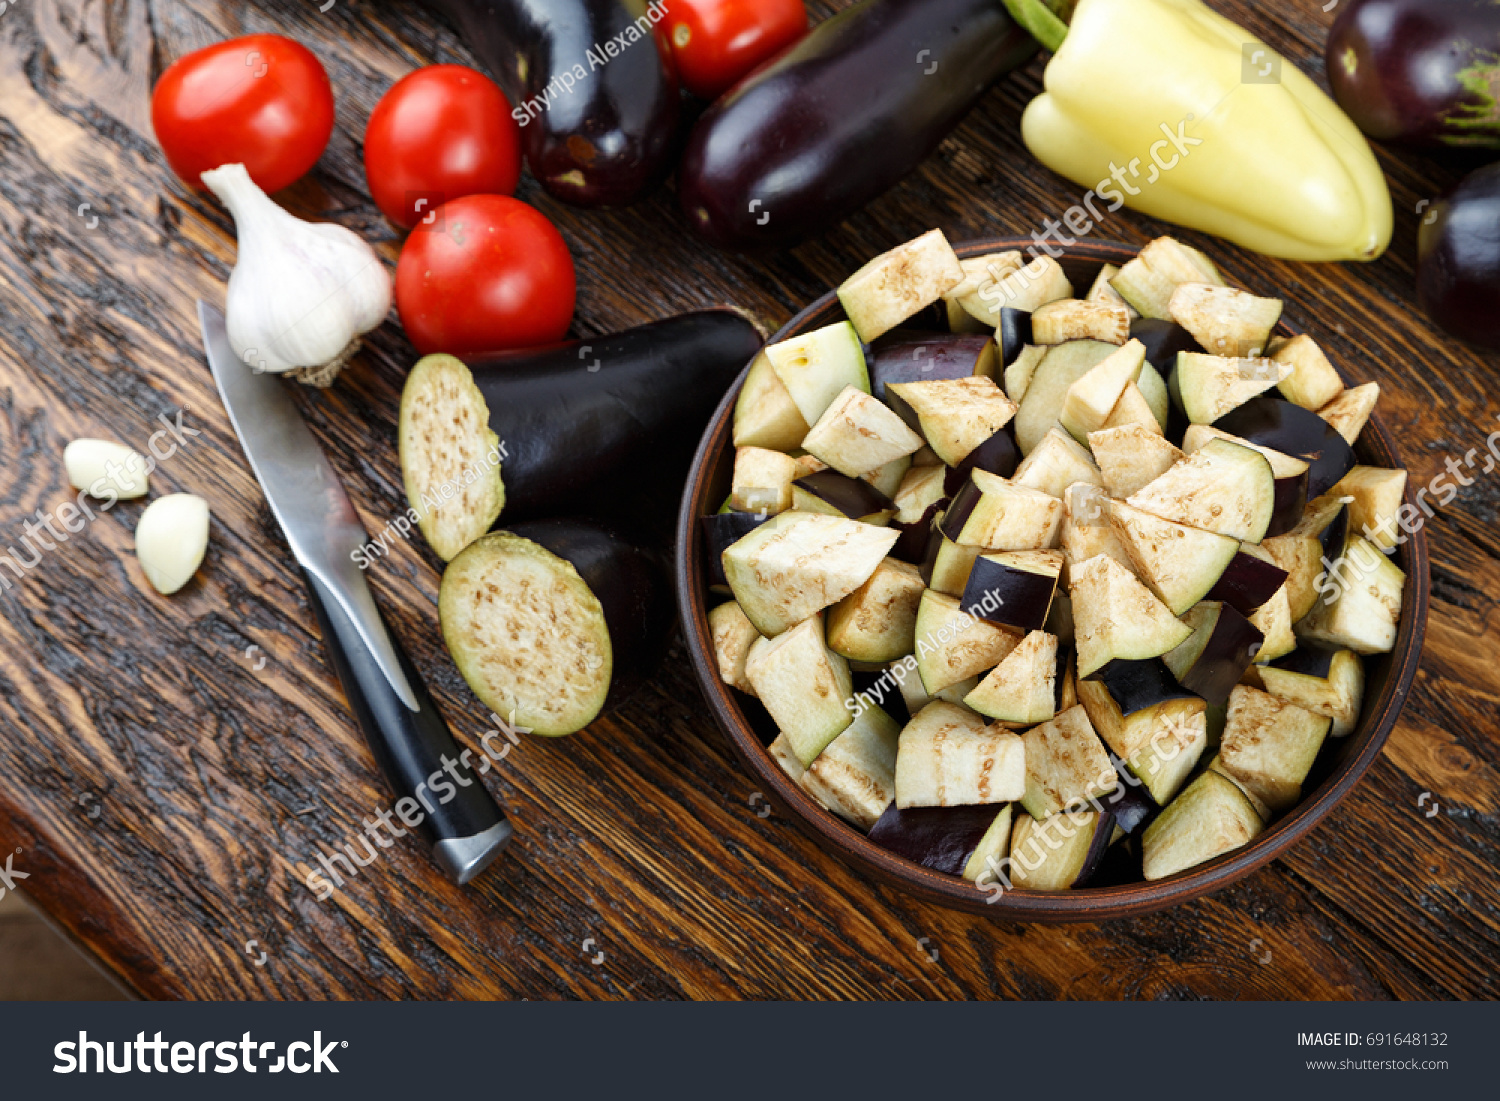 Raw diced eggplant bowl tomato garlic stock photo royalty free raw diced eggplant in a bowl tomato and garlic detail of a cut raw forumfinder Images